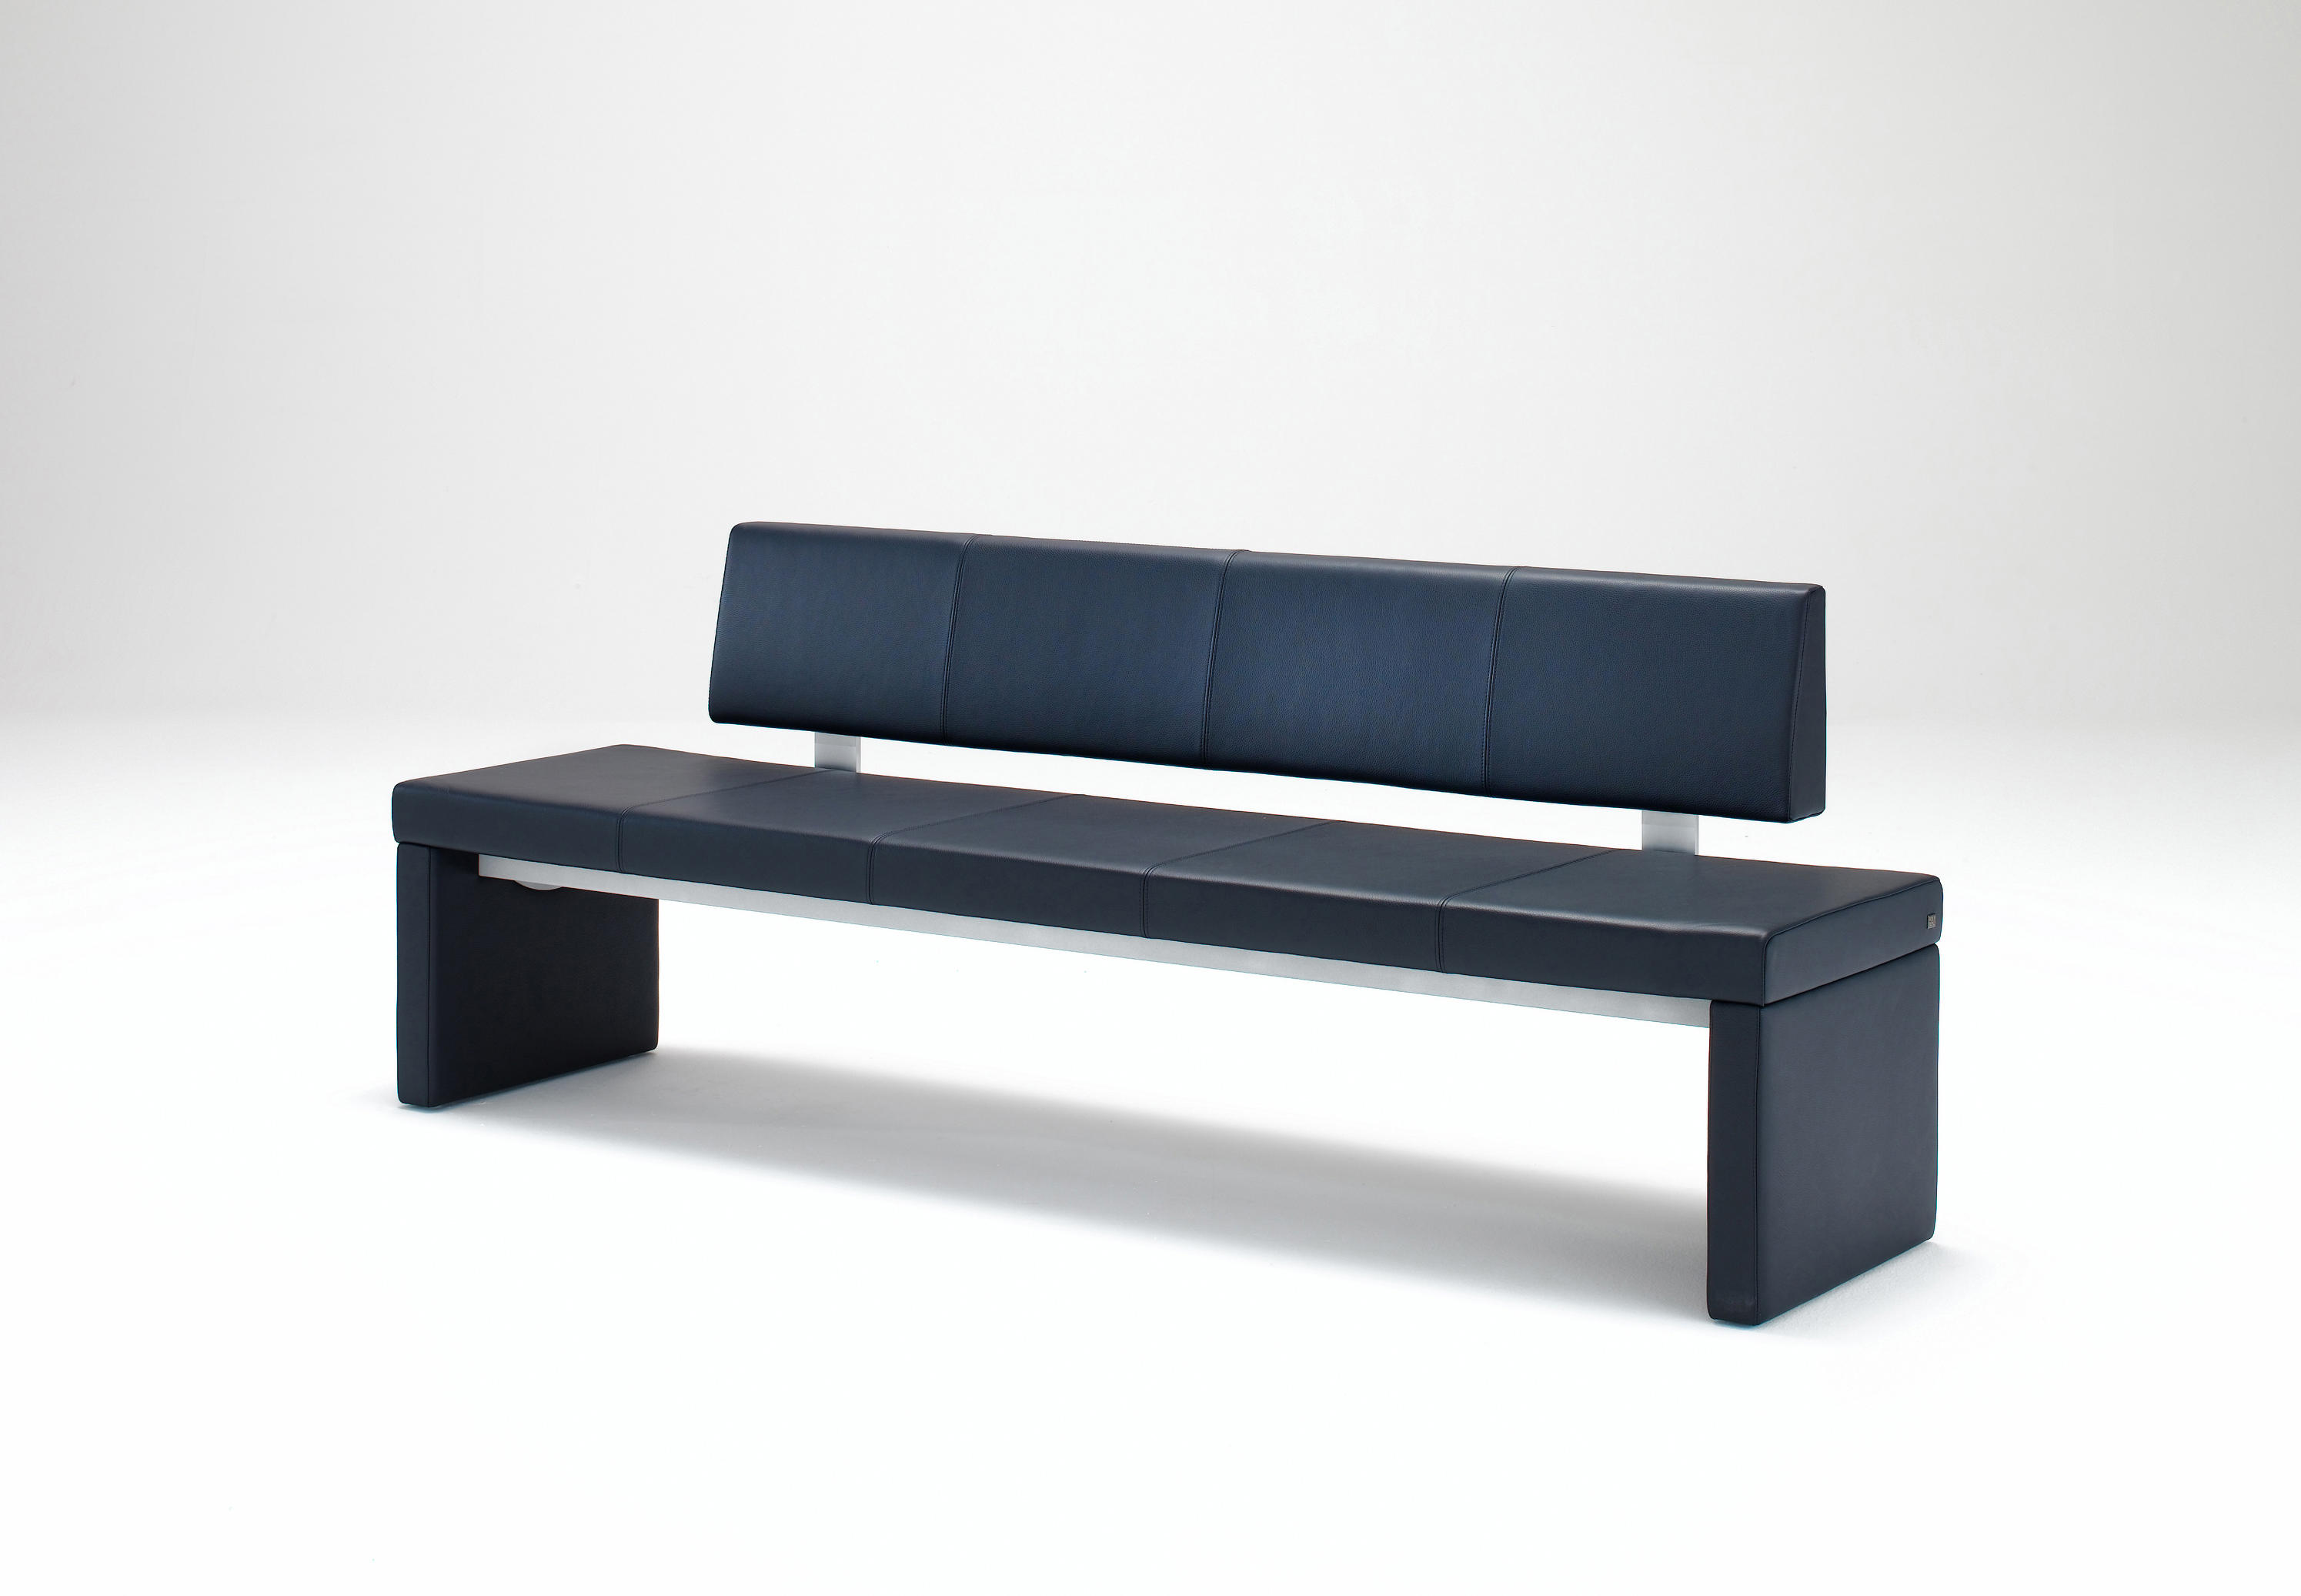 rolf benz 620 waiting area benches from rolf benz architonic. Black Bedroom Furniture Sets. Home Design Ideas